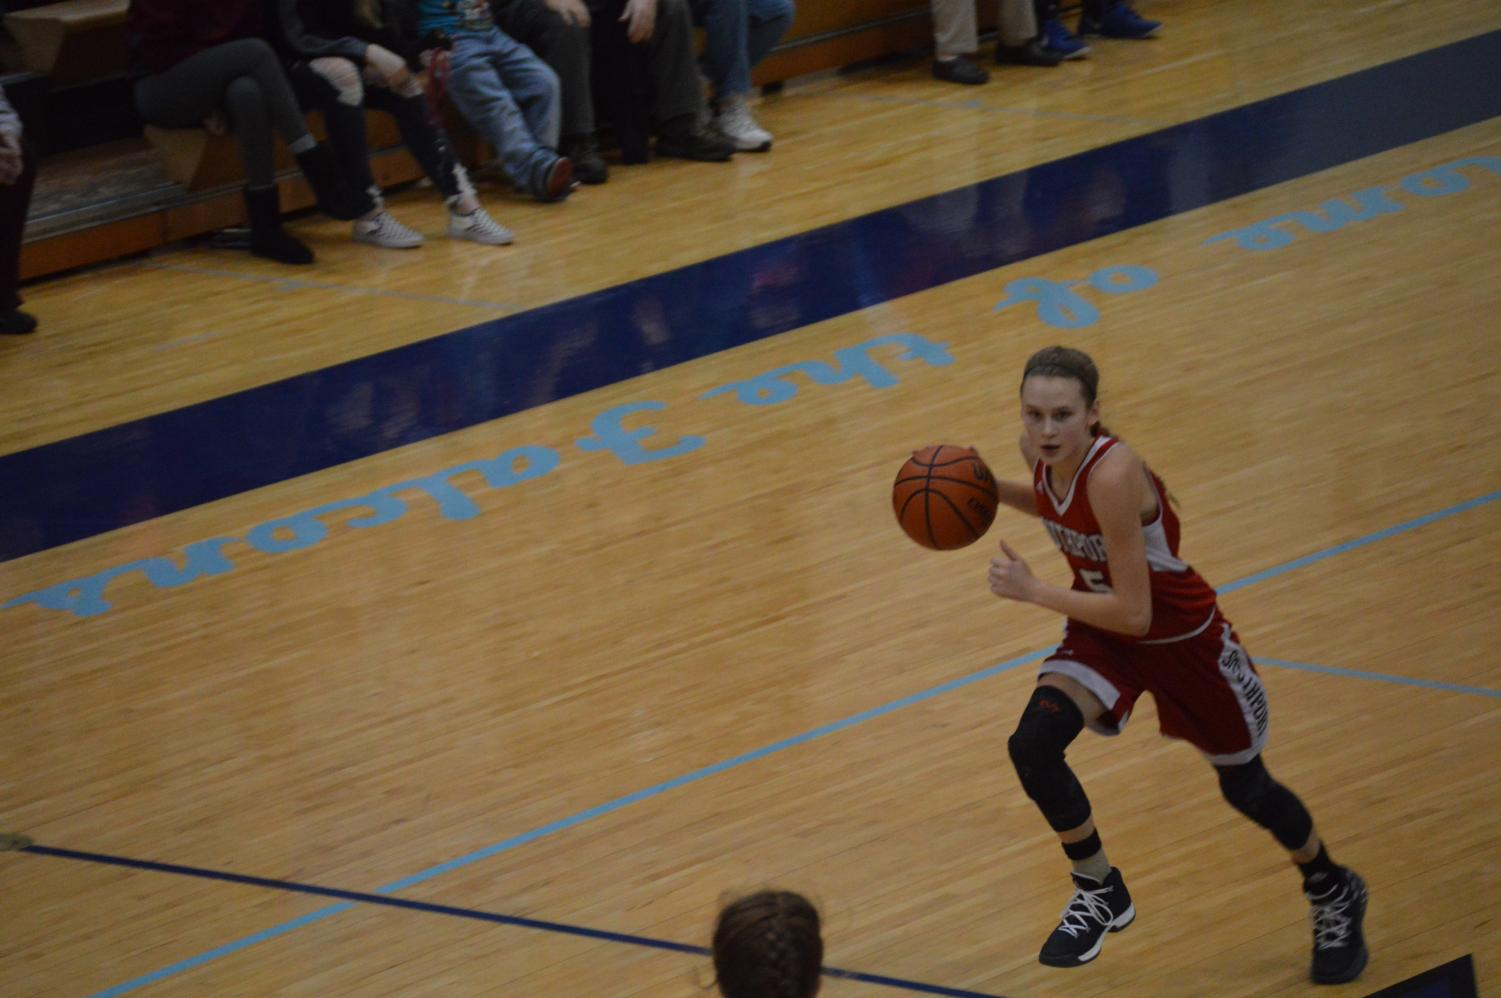 Sophomore Lexie Green dribbles against the Perry Meridian defense on Jan. 19. SHS lost in a last second shot.